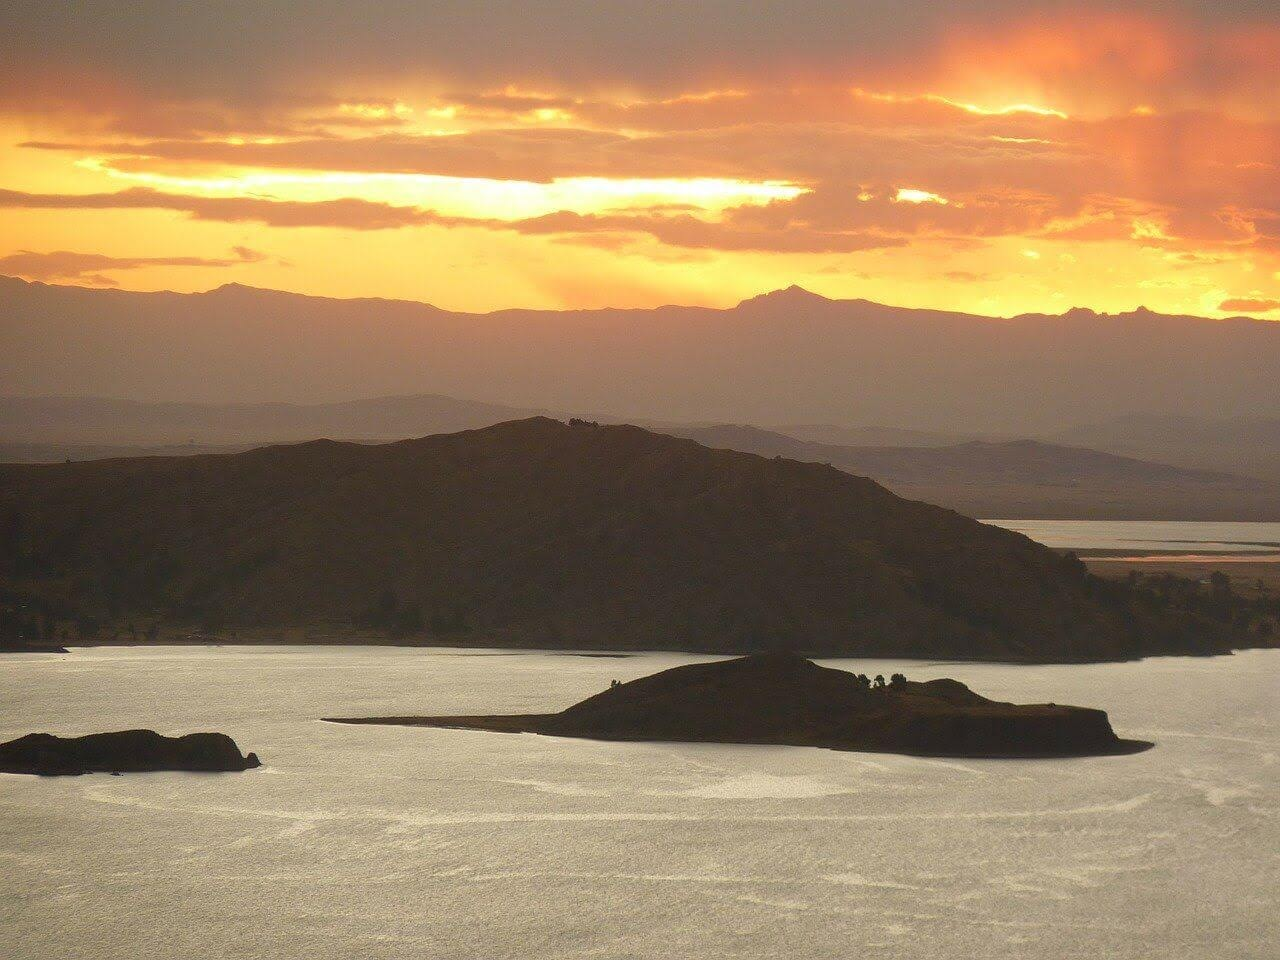 titicaca sunset in peru.jpg